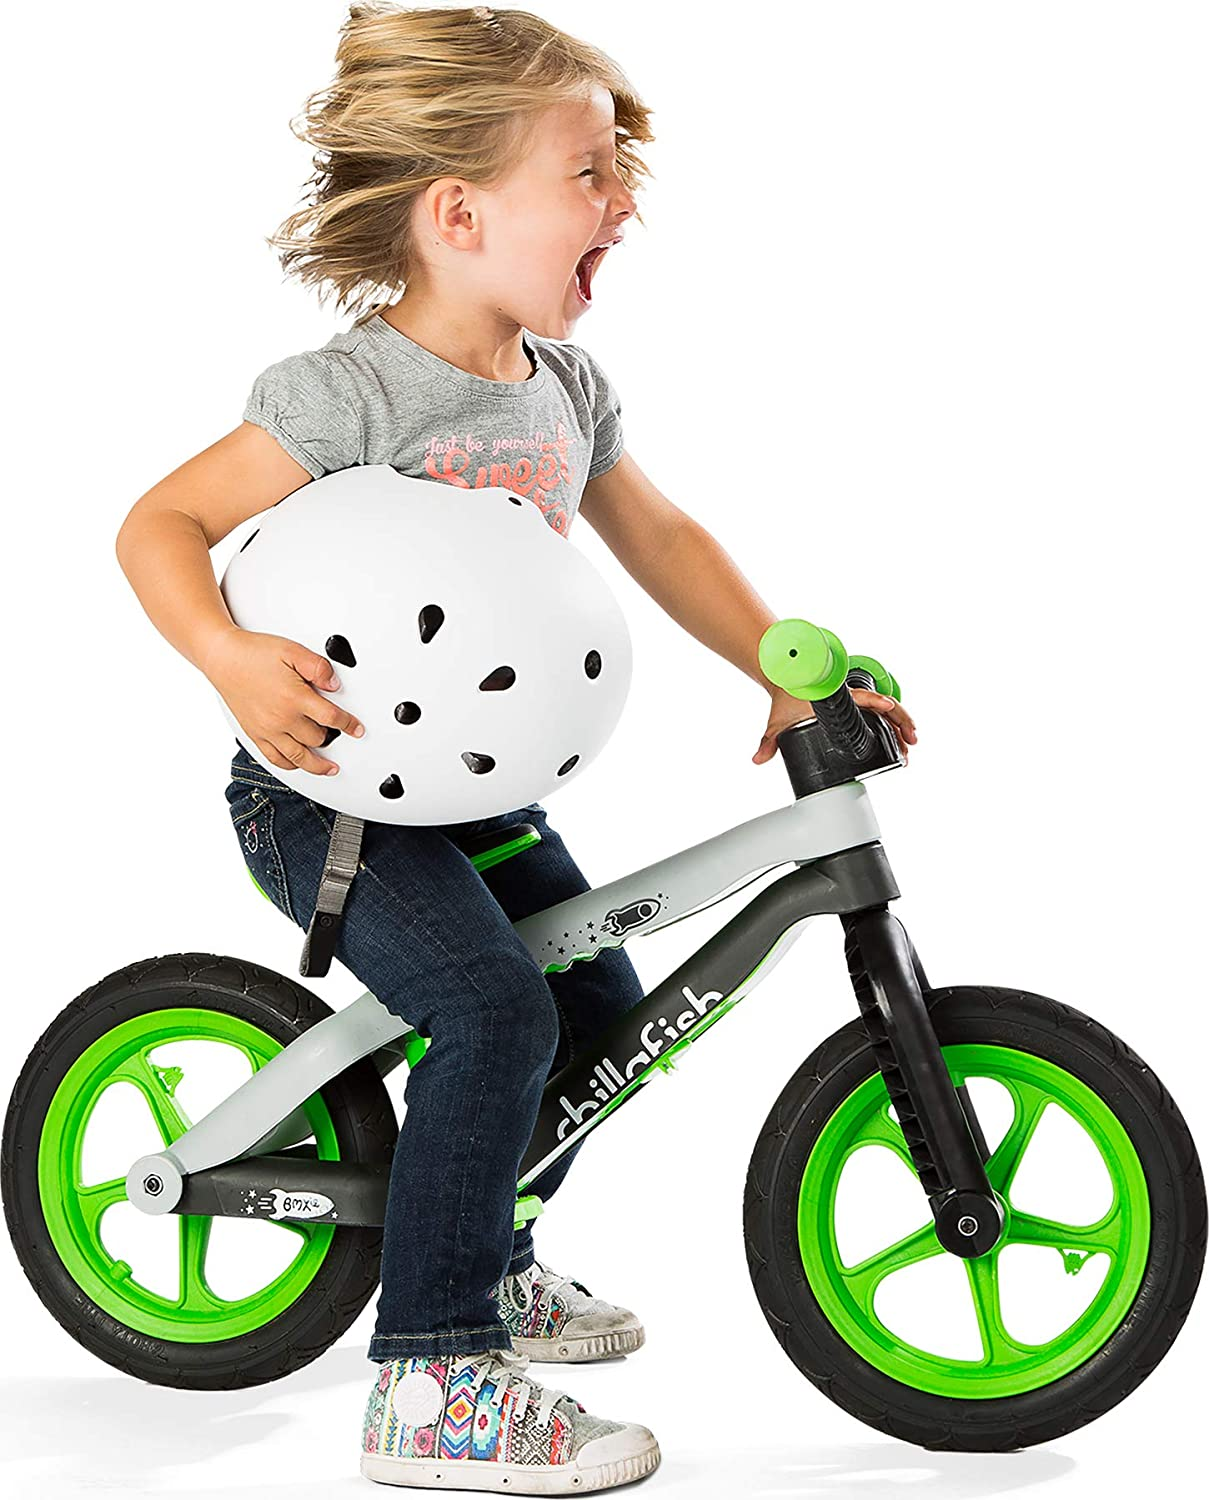 Lime Fixie Fixed-Gear Styled Balance Bike with Integrated Footrest Footbrake /& Airless Rubberskin Tires Chillafish Bmxie 2